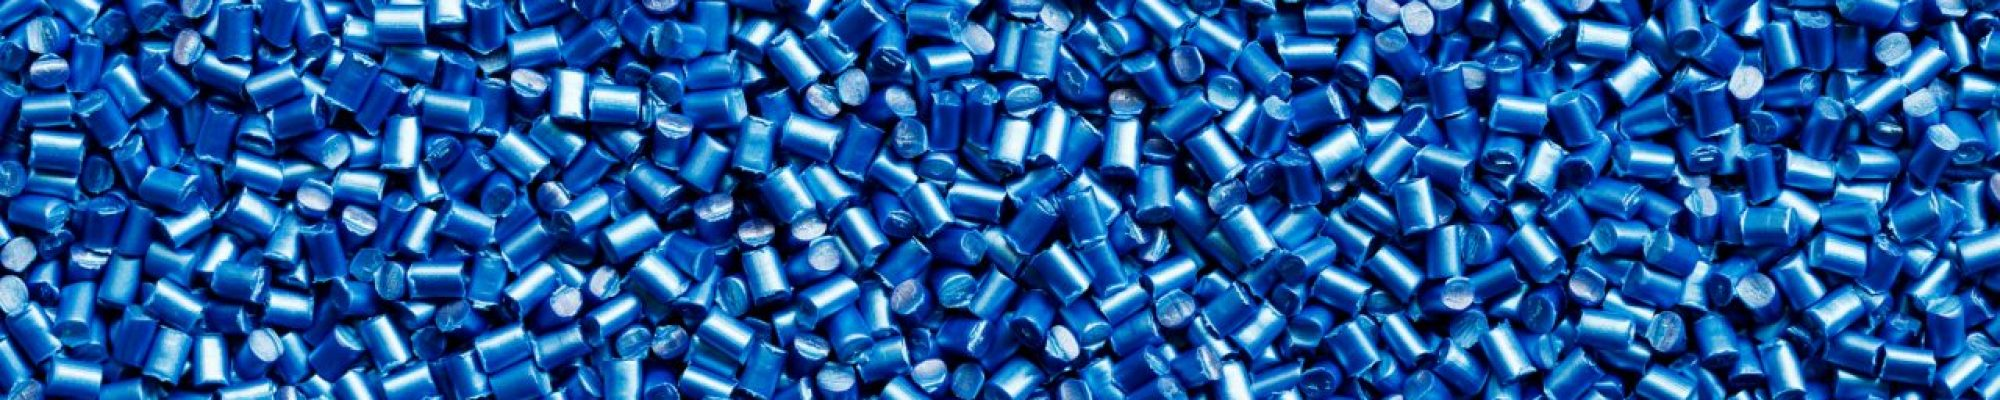 blue plastic resin ( Masterbatch ) for background